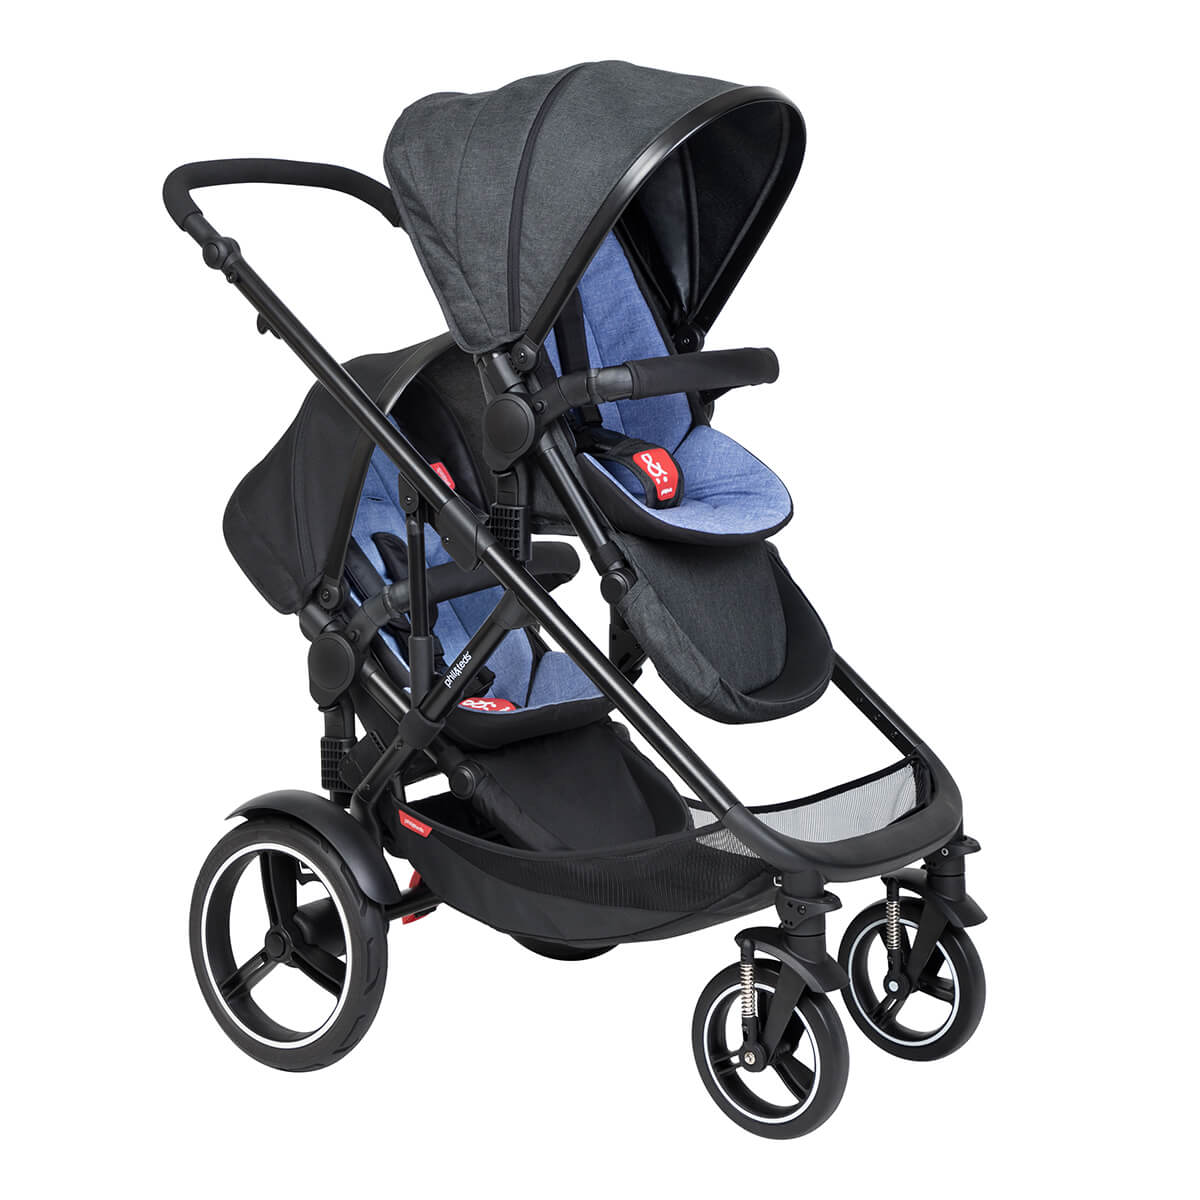 https://cdn.accentuate.io/4509529178200/19272668348504/philteds-voyager-inline-buggy-with-double-kit-in-rear-in-sky-blue-colour-v1626484764336.jpg?1200x1200